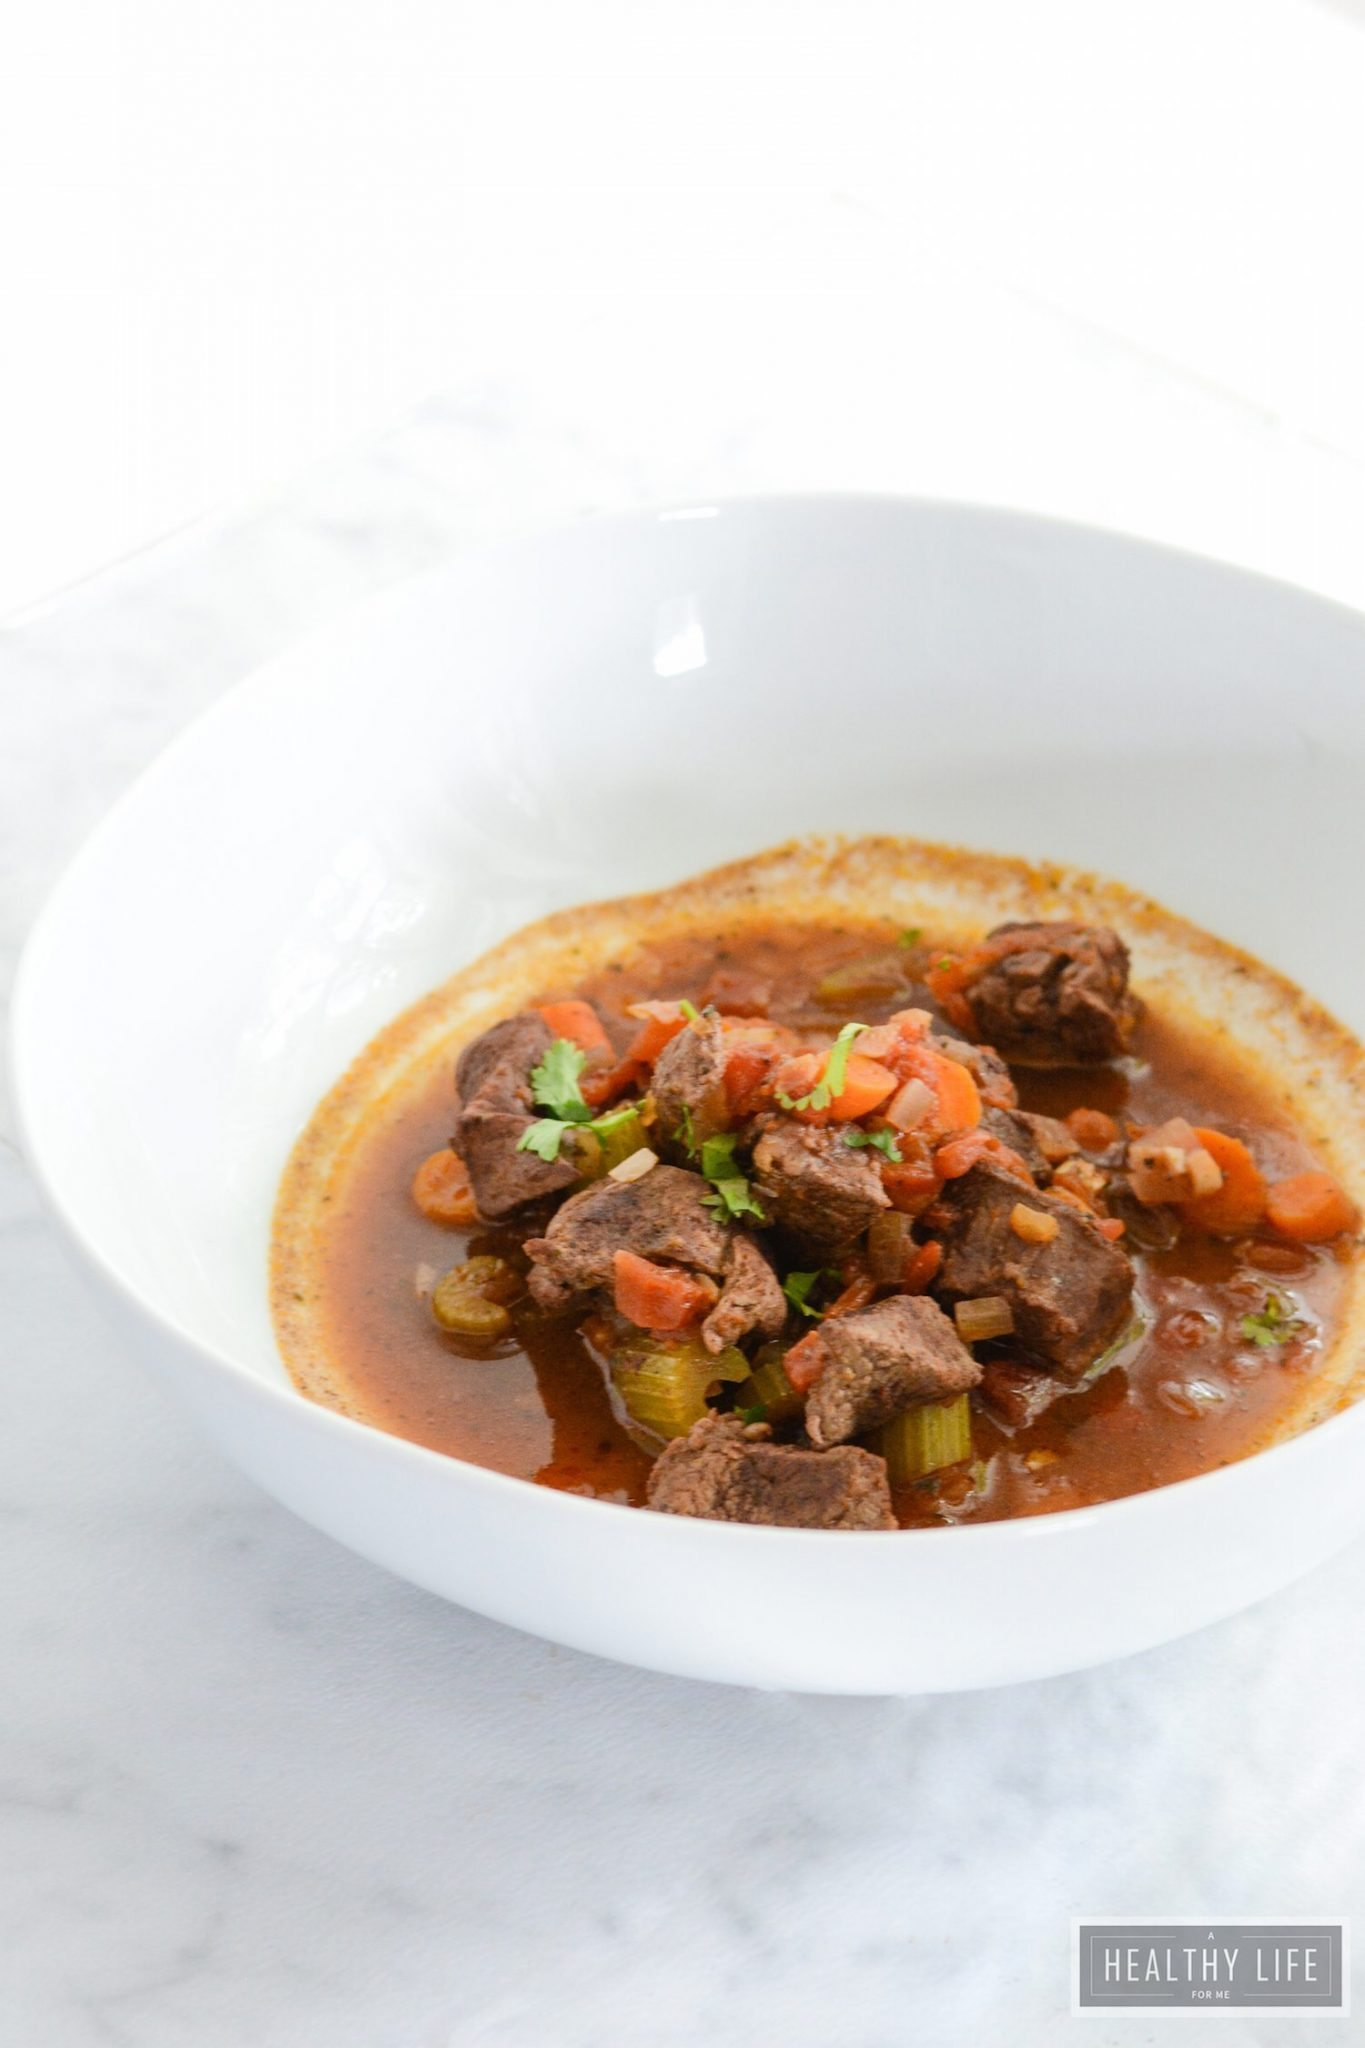 Paleo lamb stew a healthy life for me - Quince recipes for babies a healthy fall ...